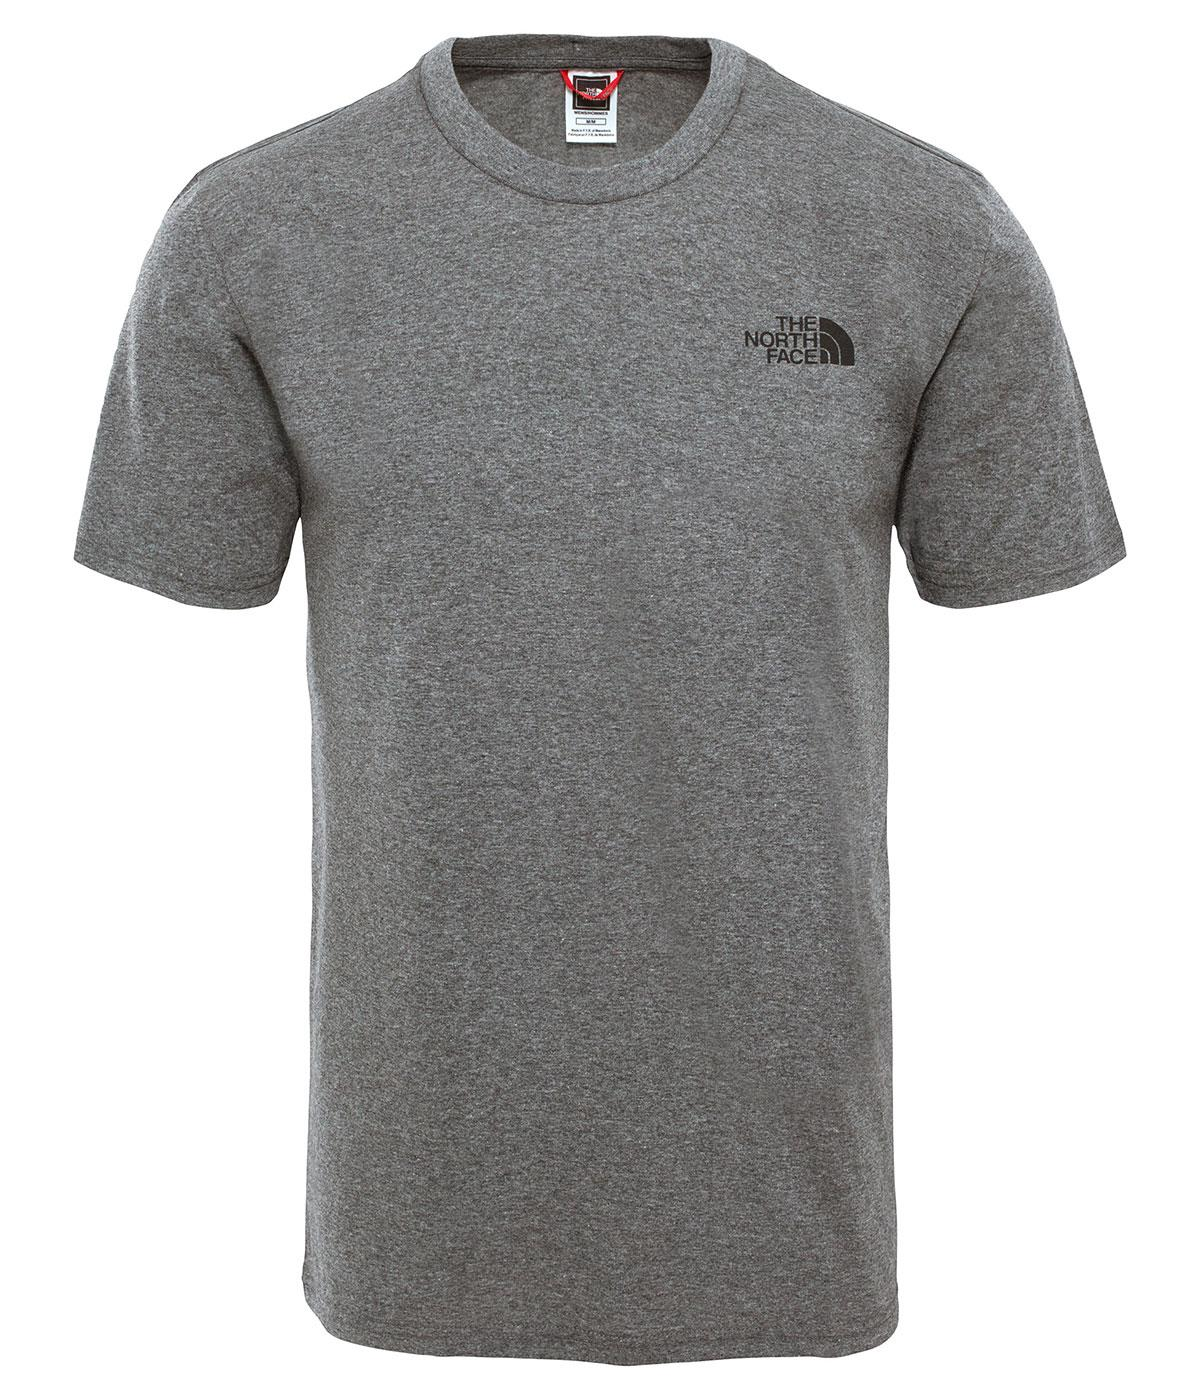 The Northface Erkek S/S Simple Dome Gri Tee T92Tx5Jbv